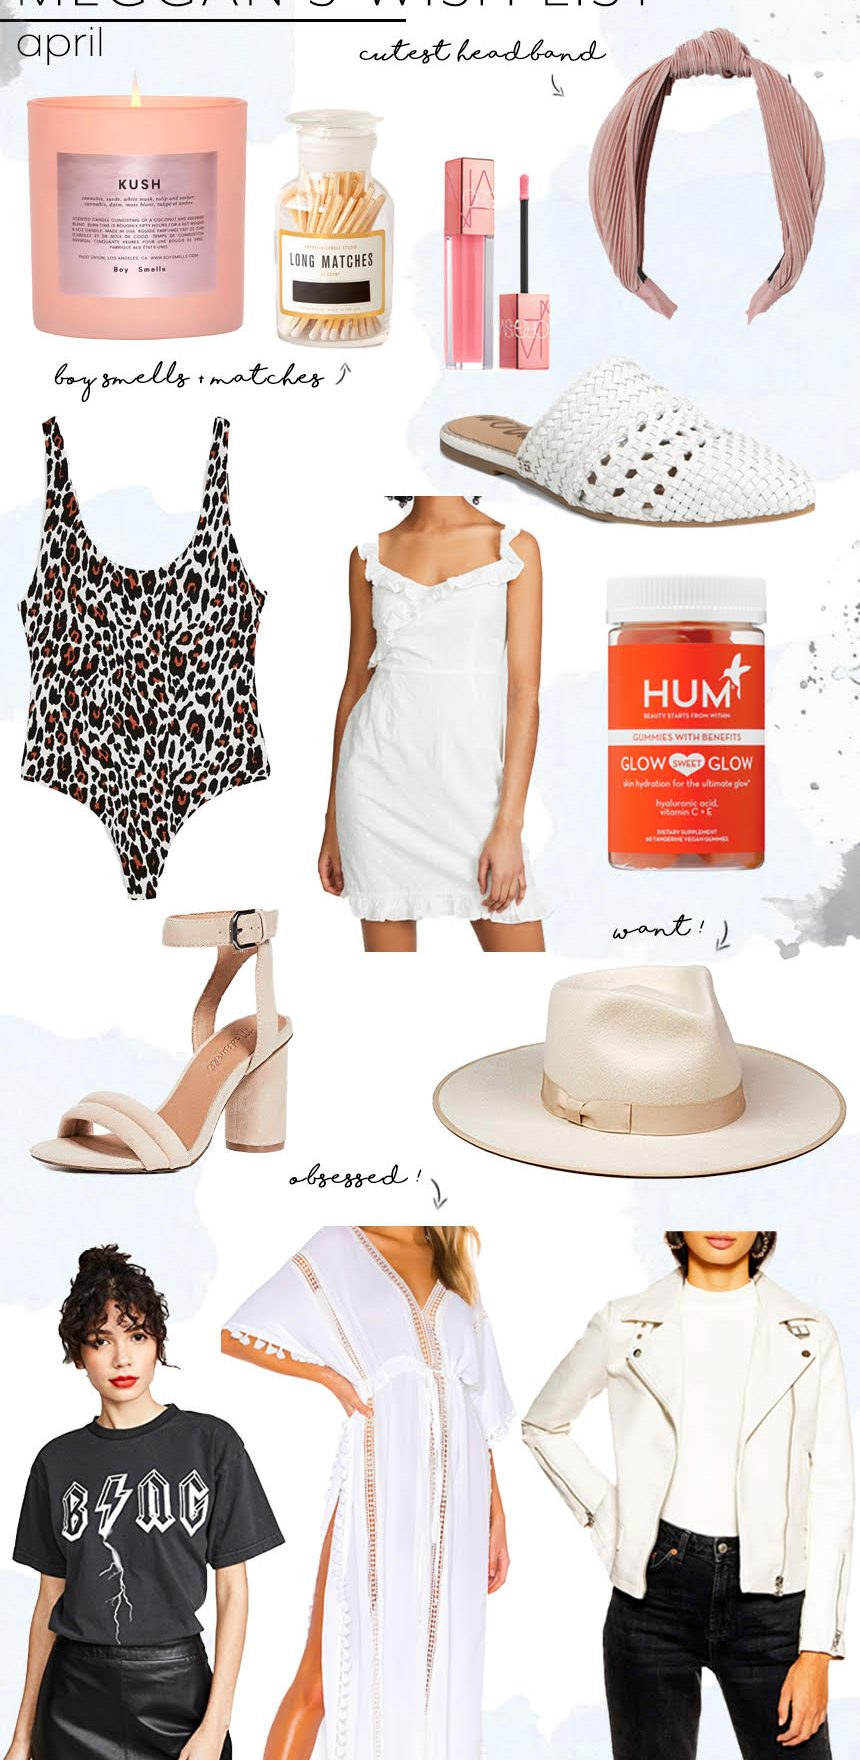 Our April Wish Lists